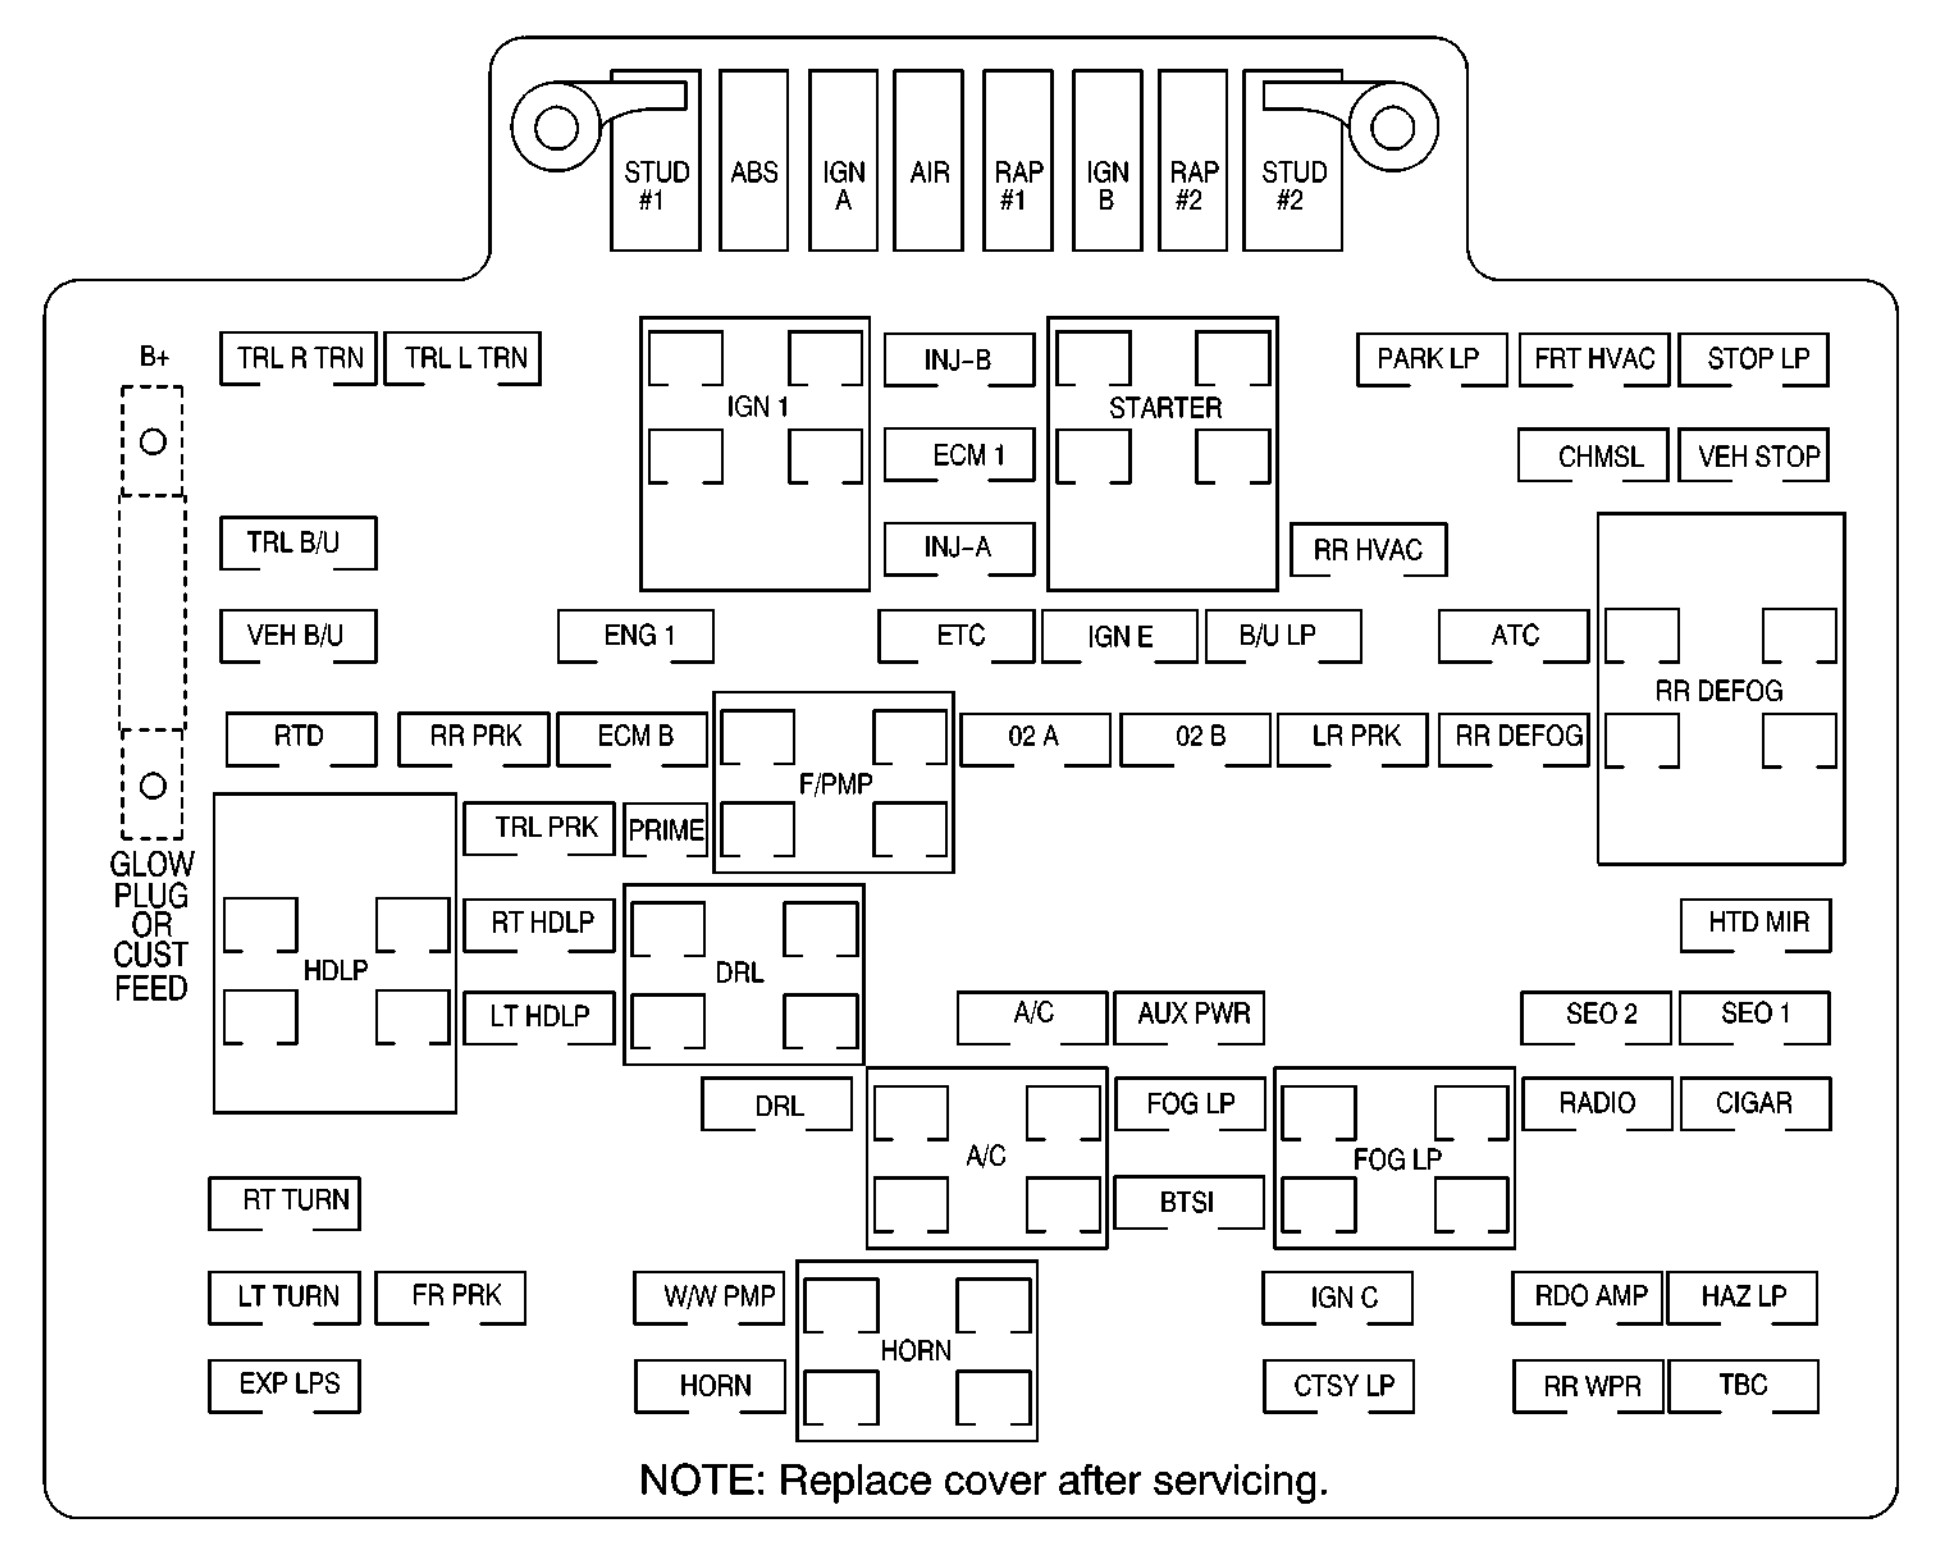 1998 Lincoln Continental Fuse Box Diagram Trusted Wiring 97 Library Ford Crown Victoria